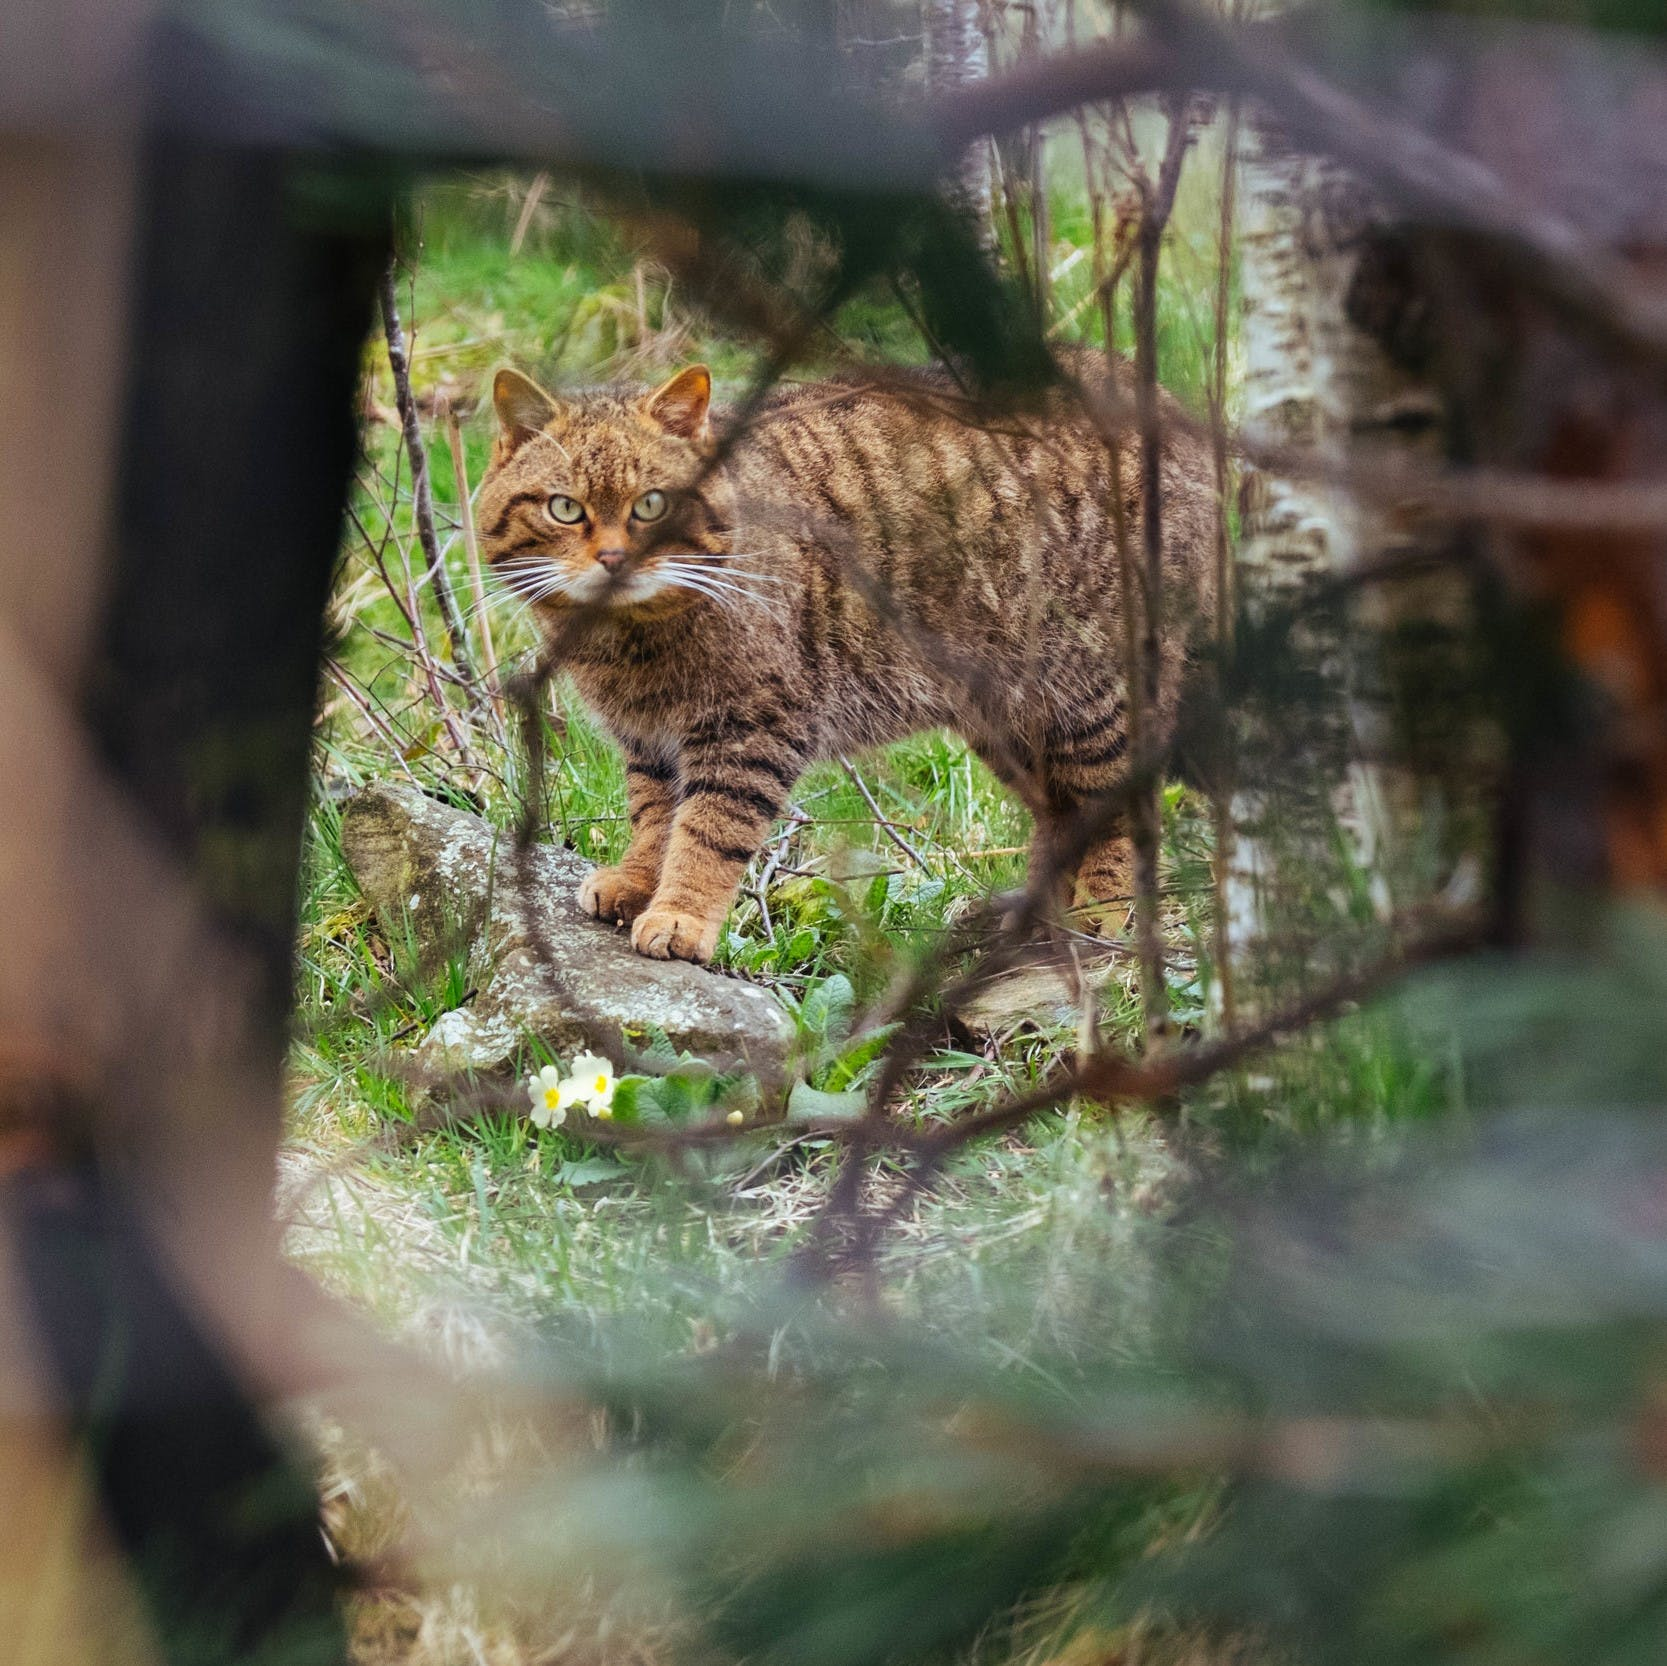 A Scottish wildcat stands among the primroses and pears through a gap in the trees